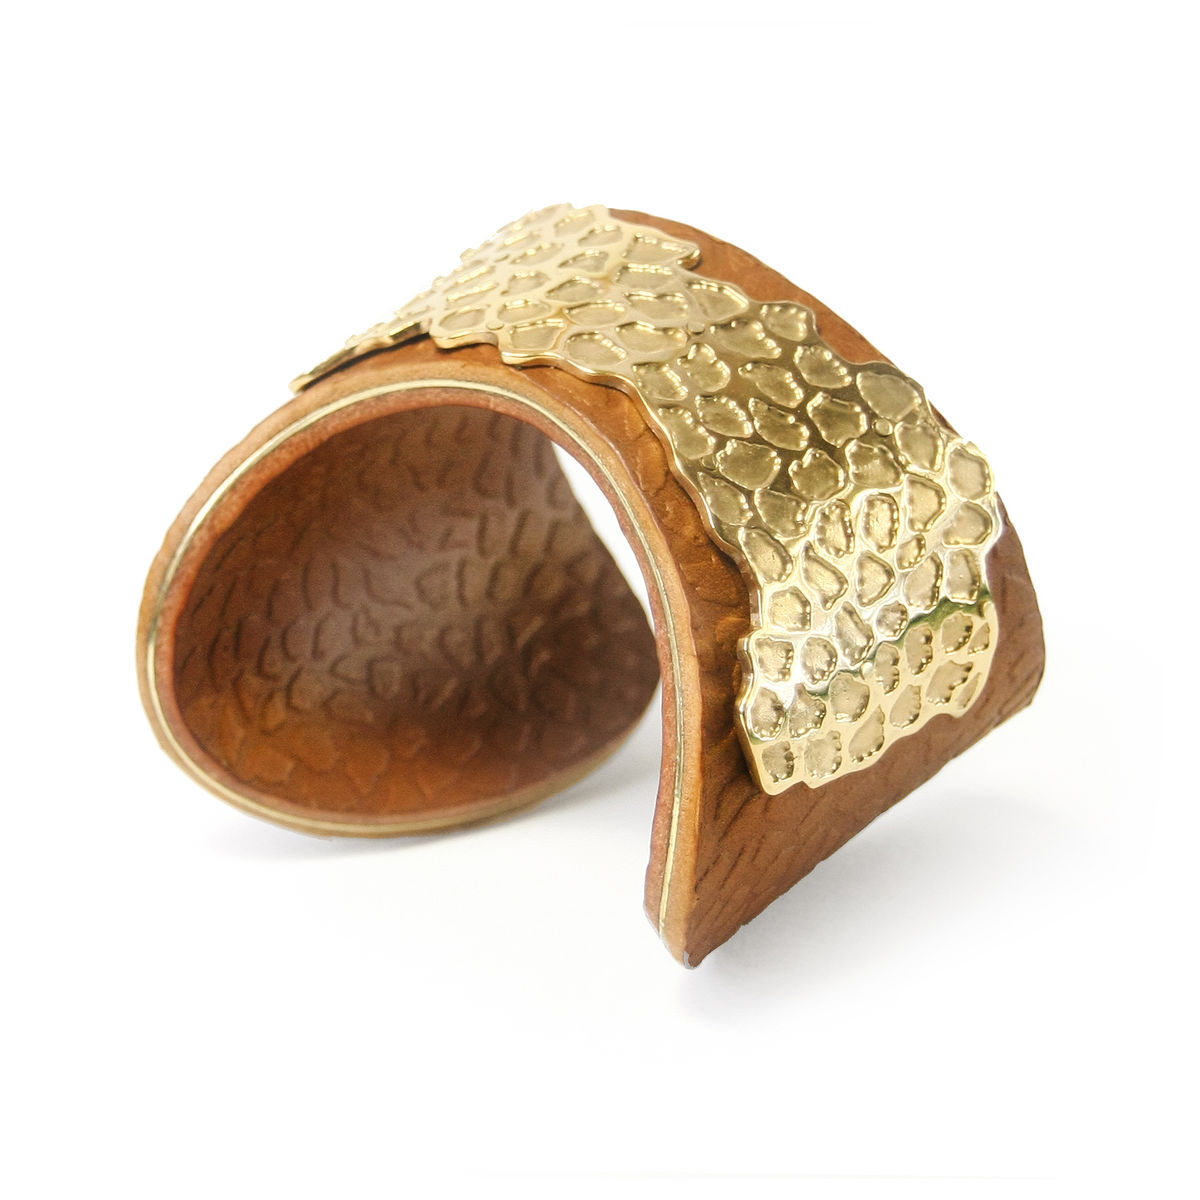 Tan & Gold 'Skin' Overlay Cuff - Sara Gunn - product images  of